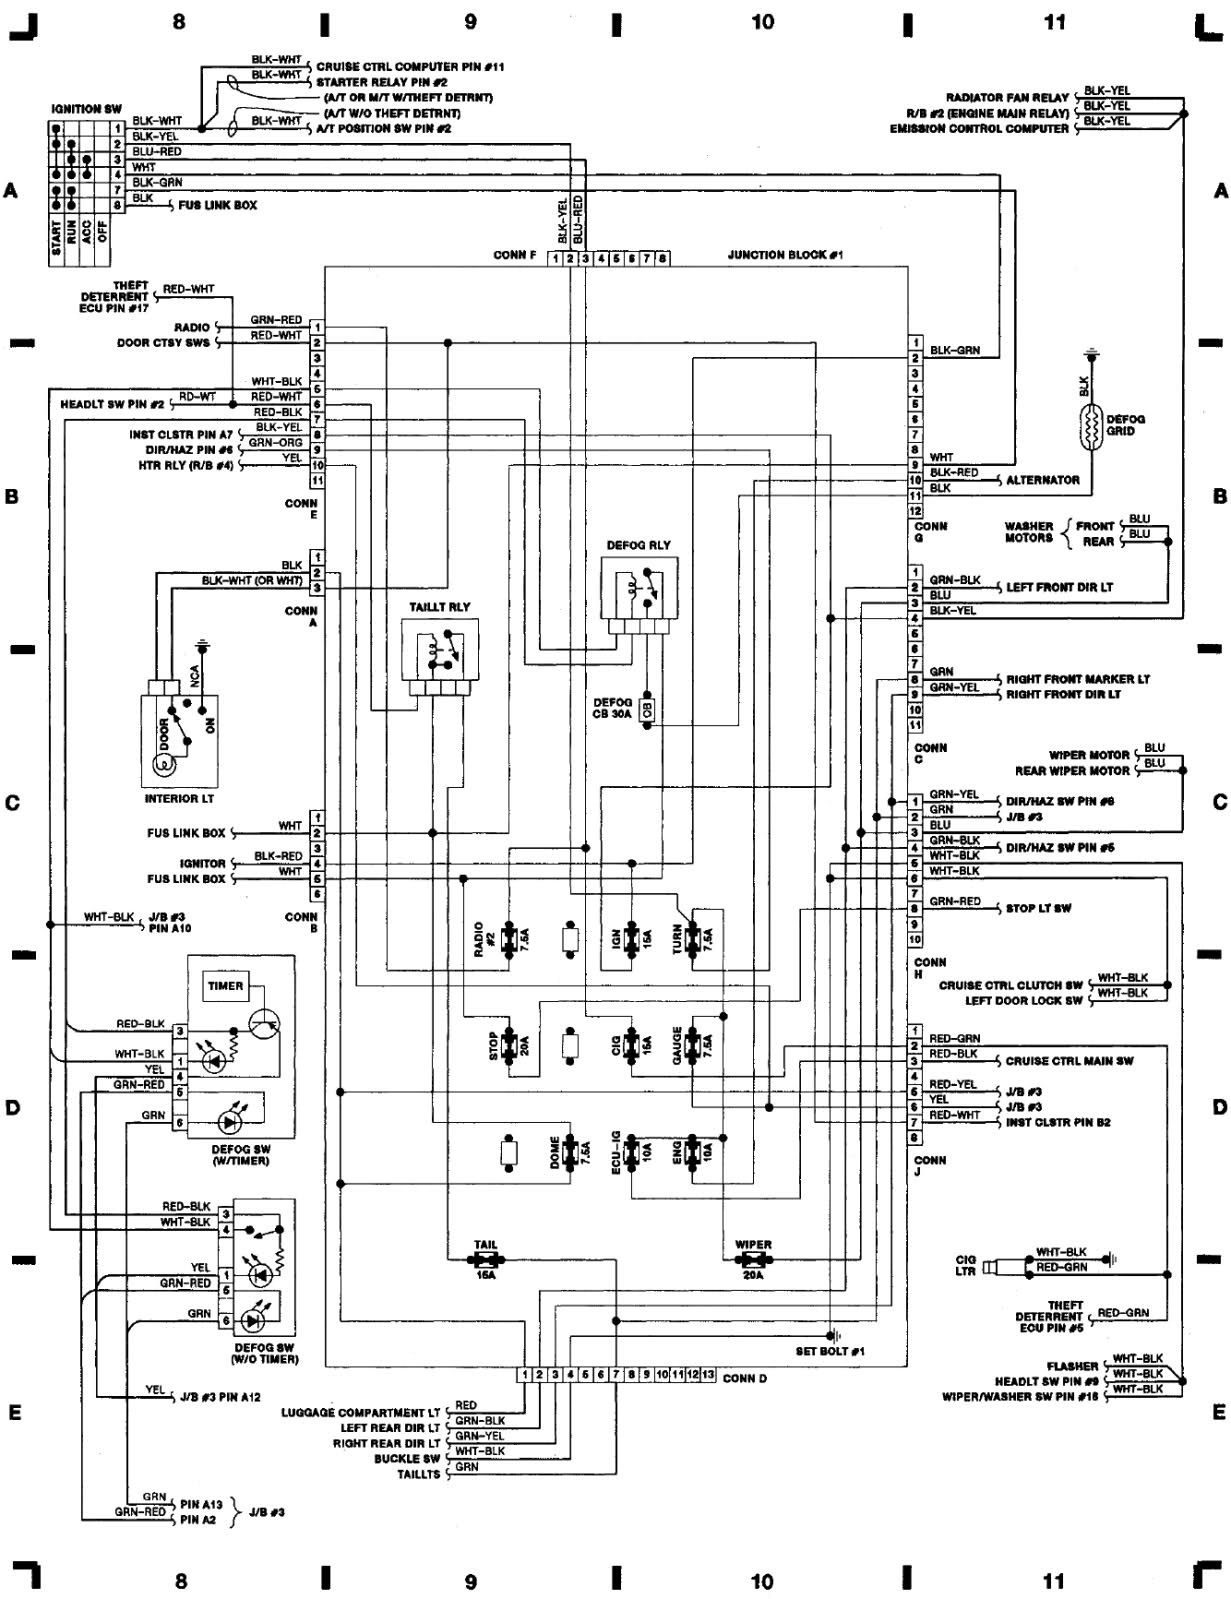 Toyota Celica Full Wiring Diagram